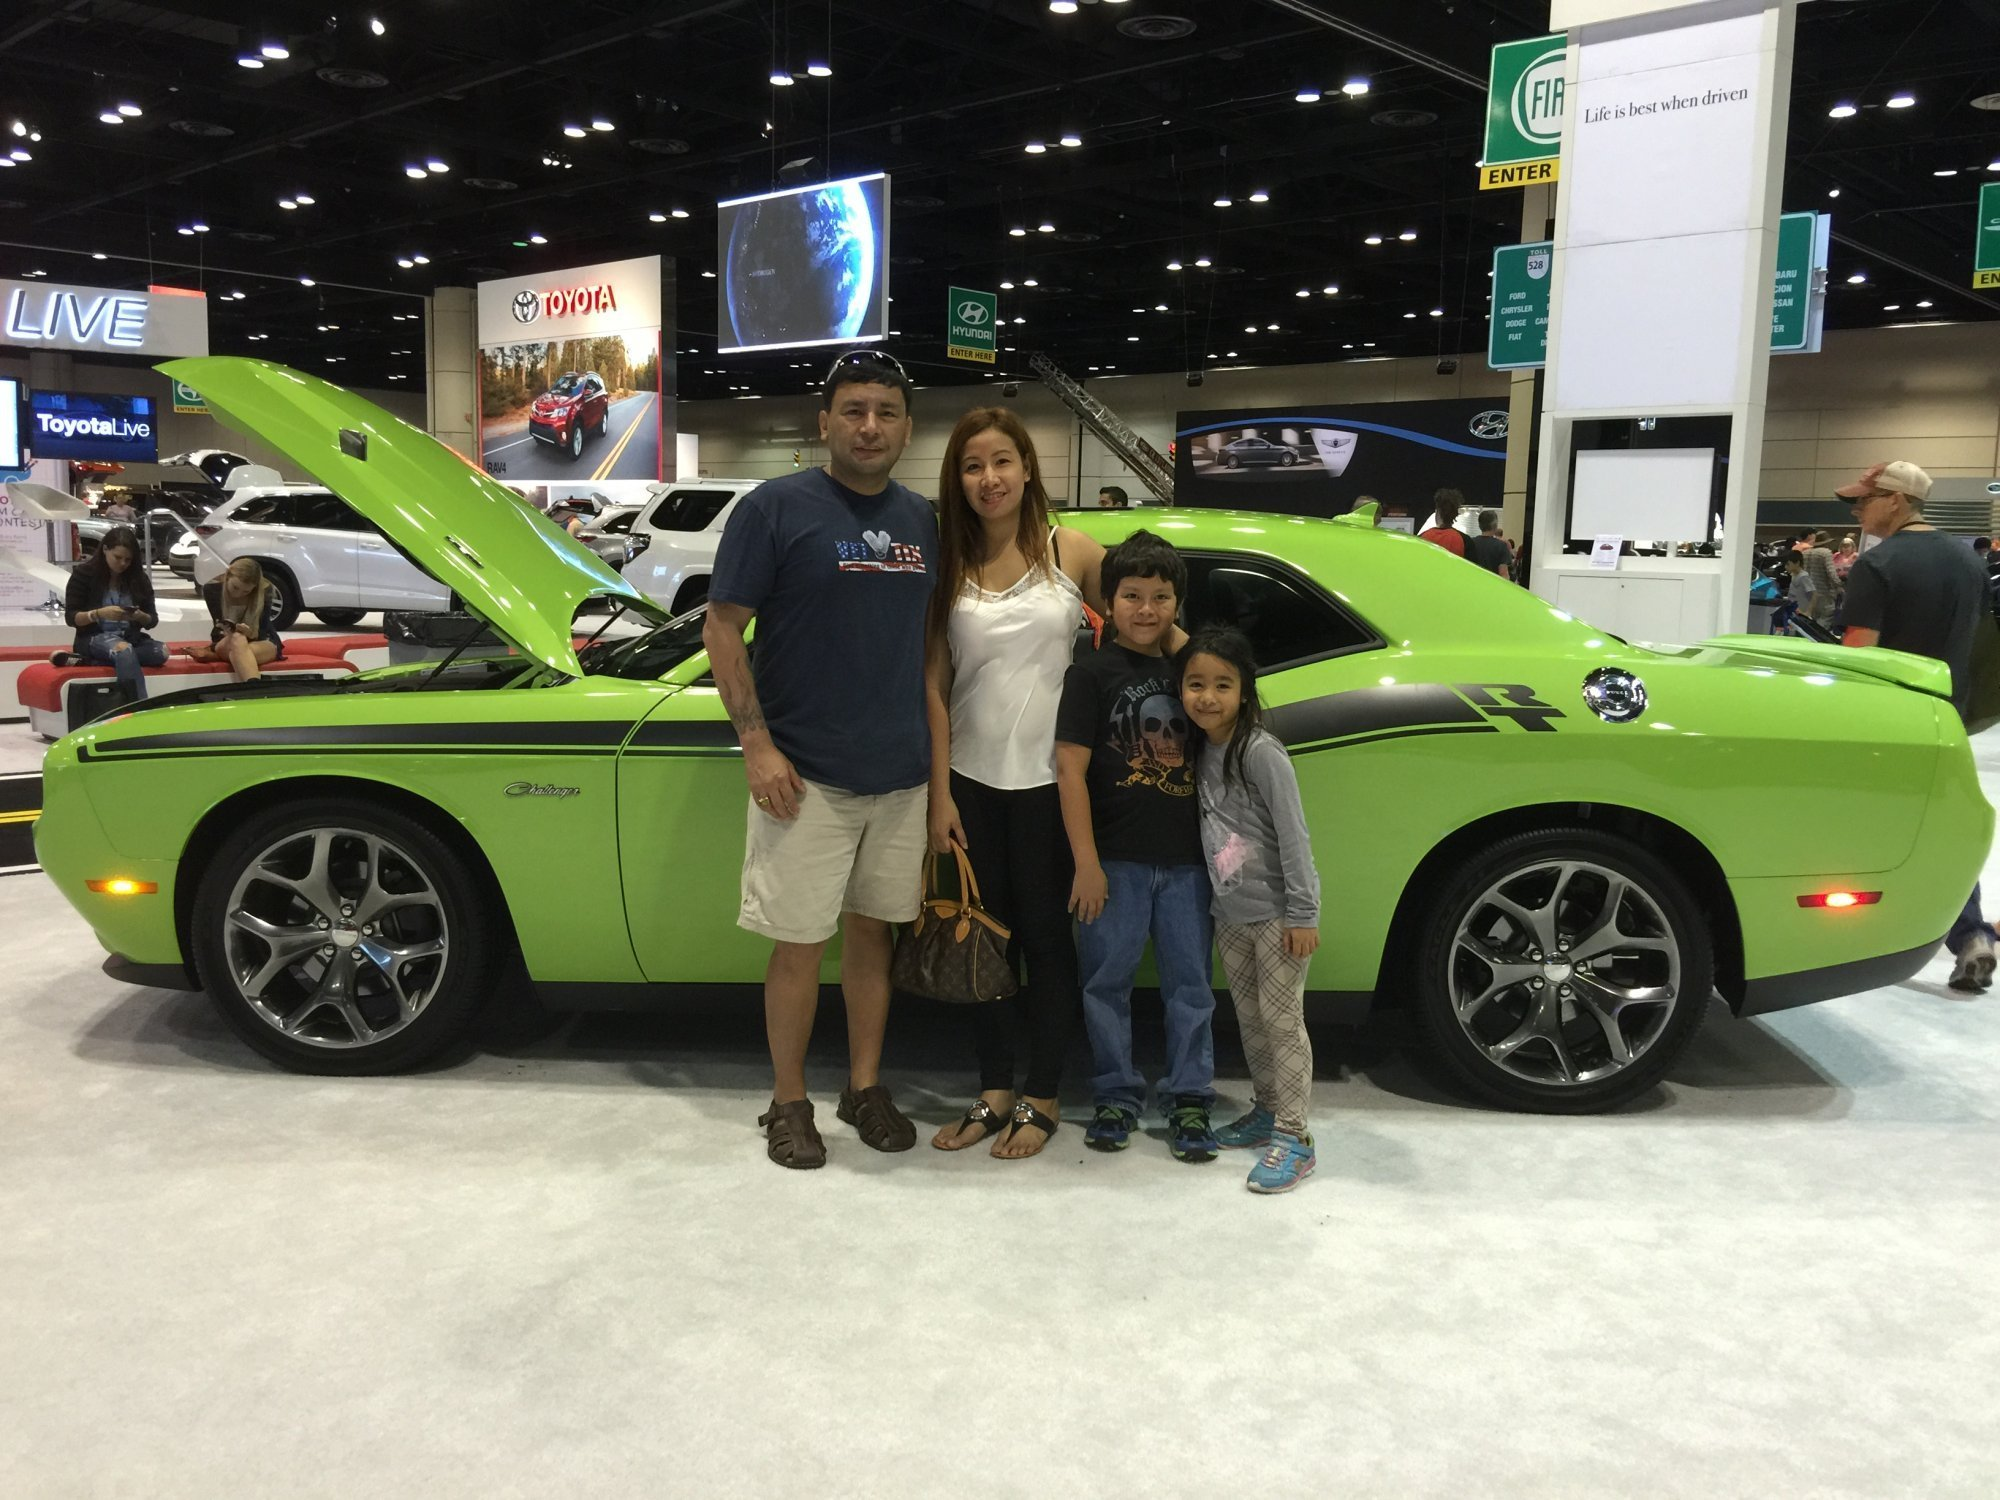 Thank You Messages To Veteran Tickets Foundation Donors - Car show orlando classic weekend